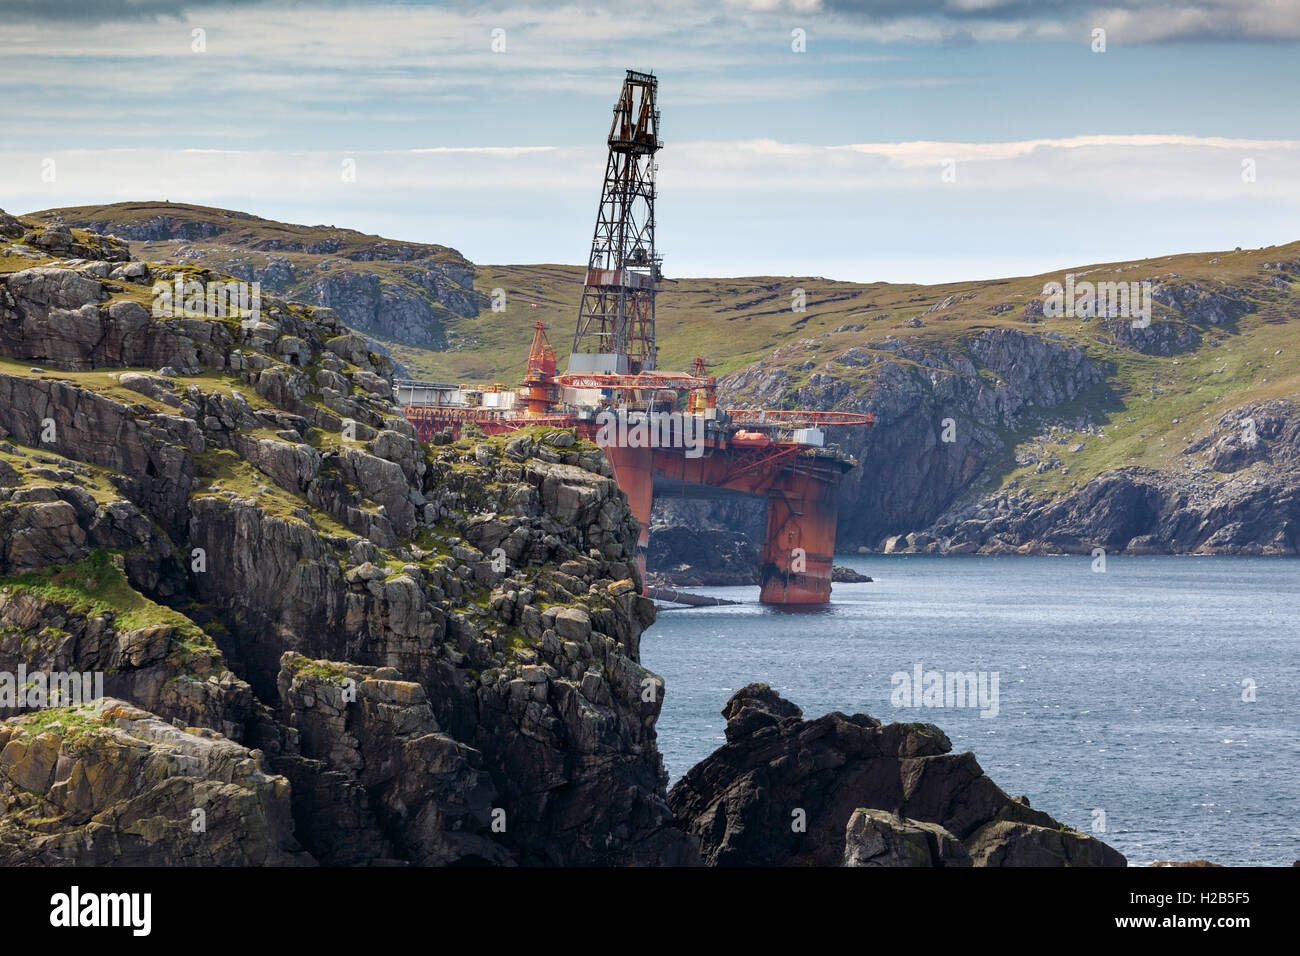 Isle of Lewis, Outer Hebrides, Scotland Transocean Winner Oil rig run aground at Dalmore Beach - Stock Image